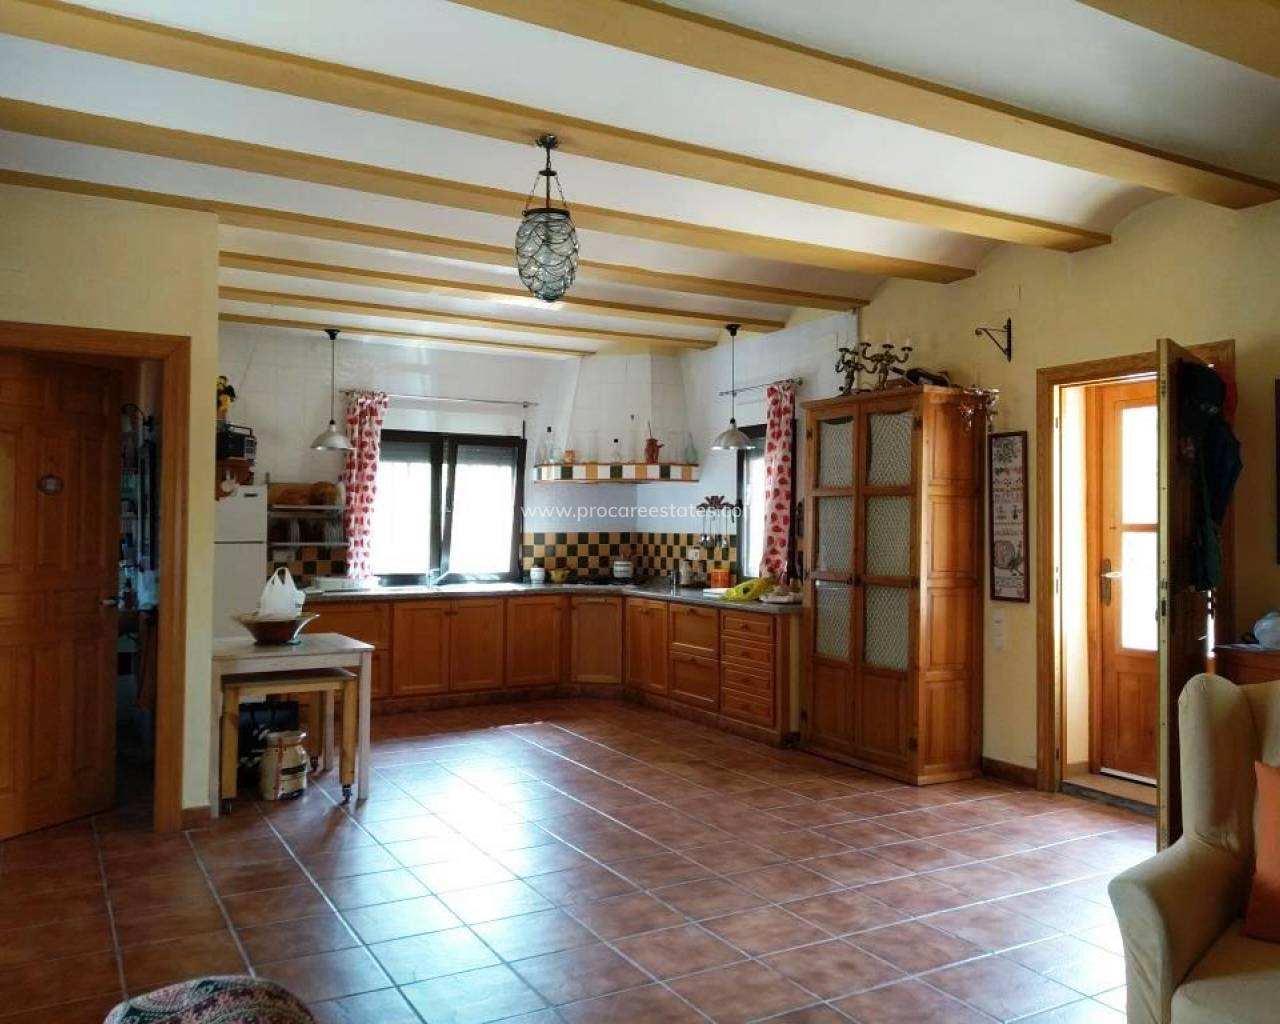 Verkoop - Country Property - Agres